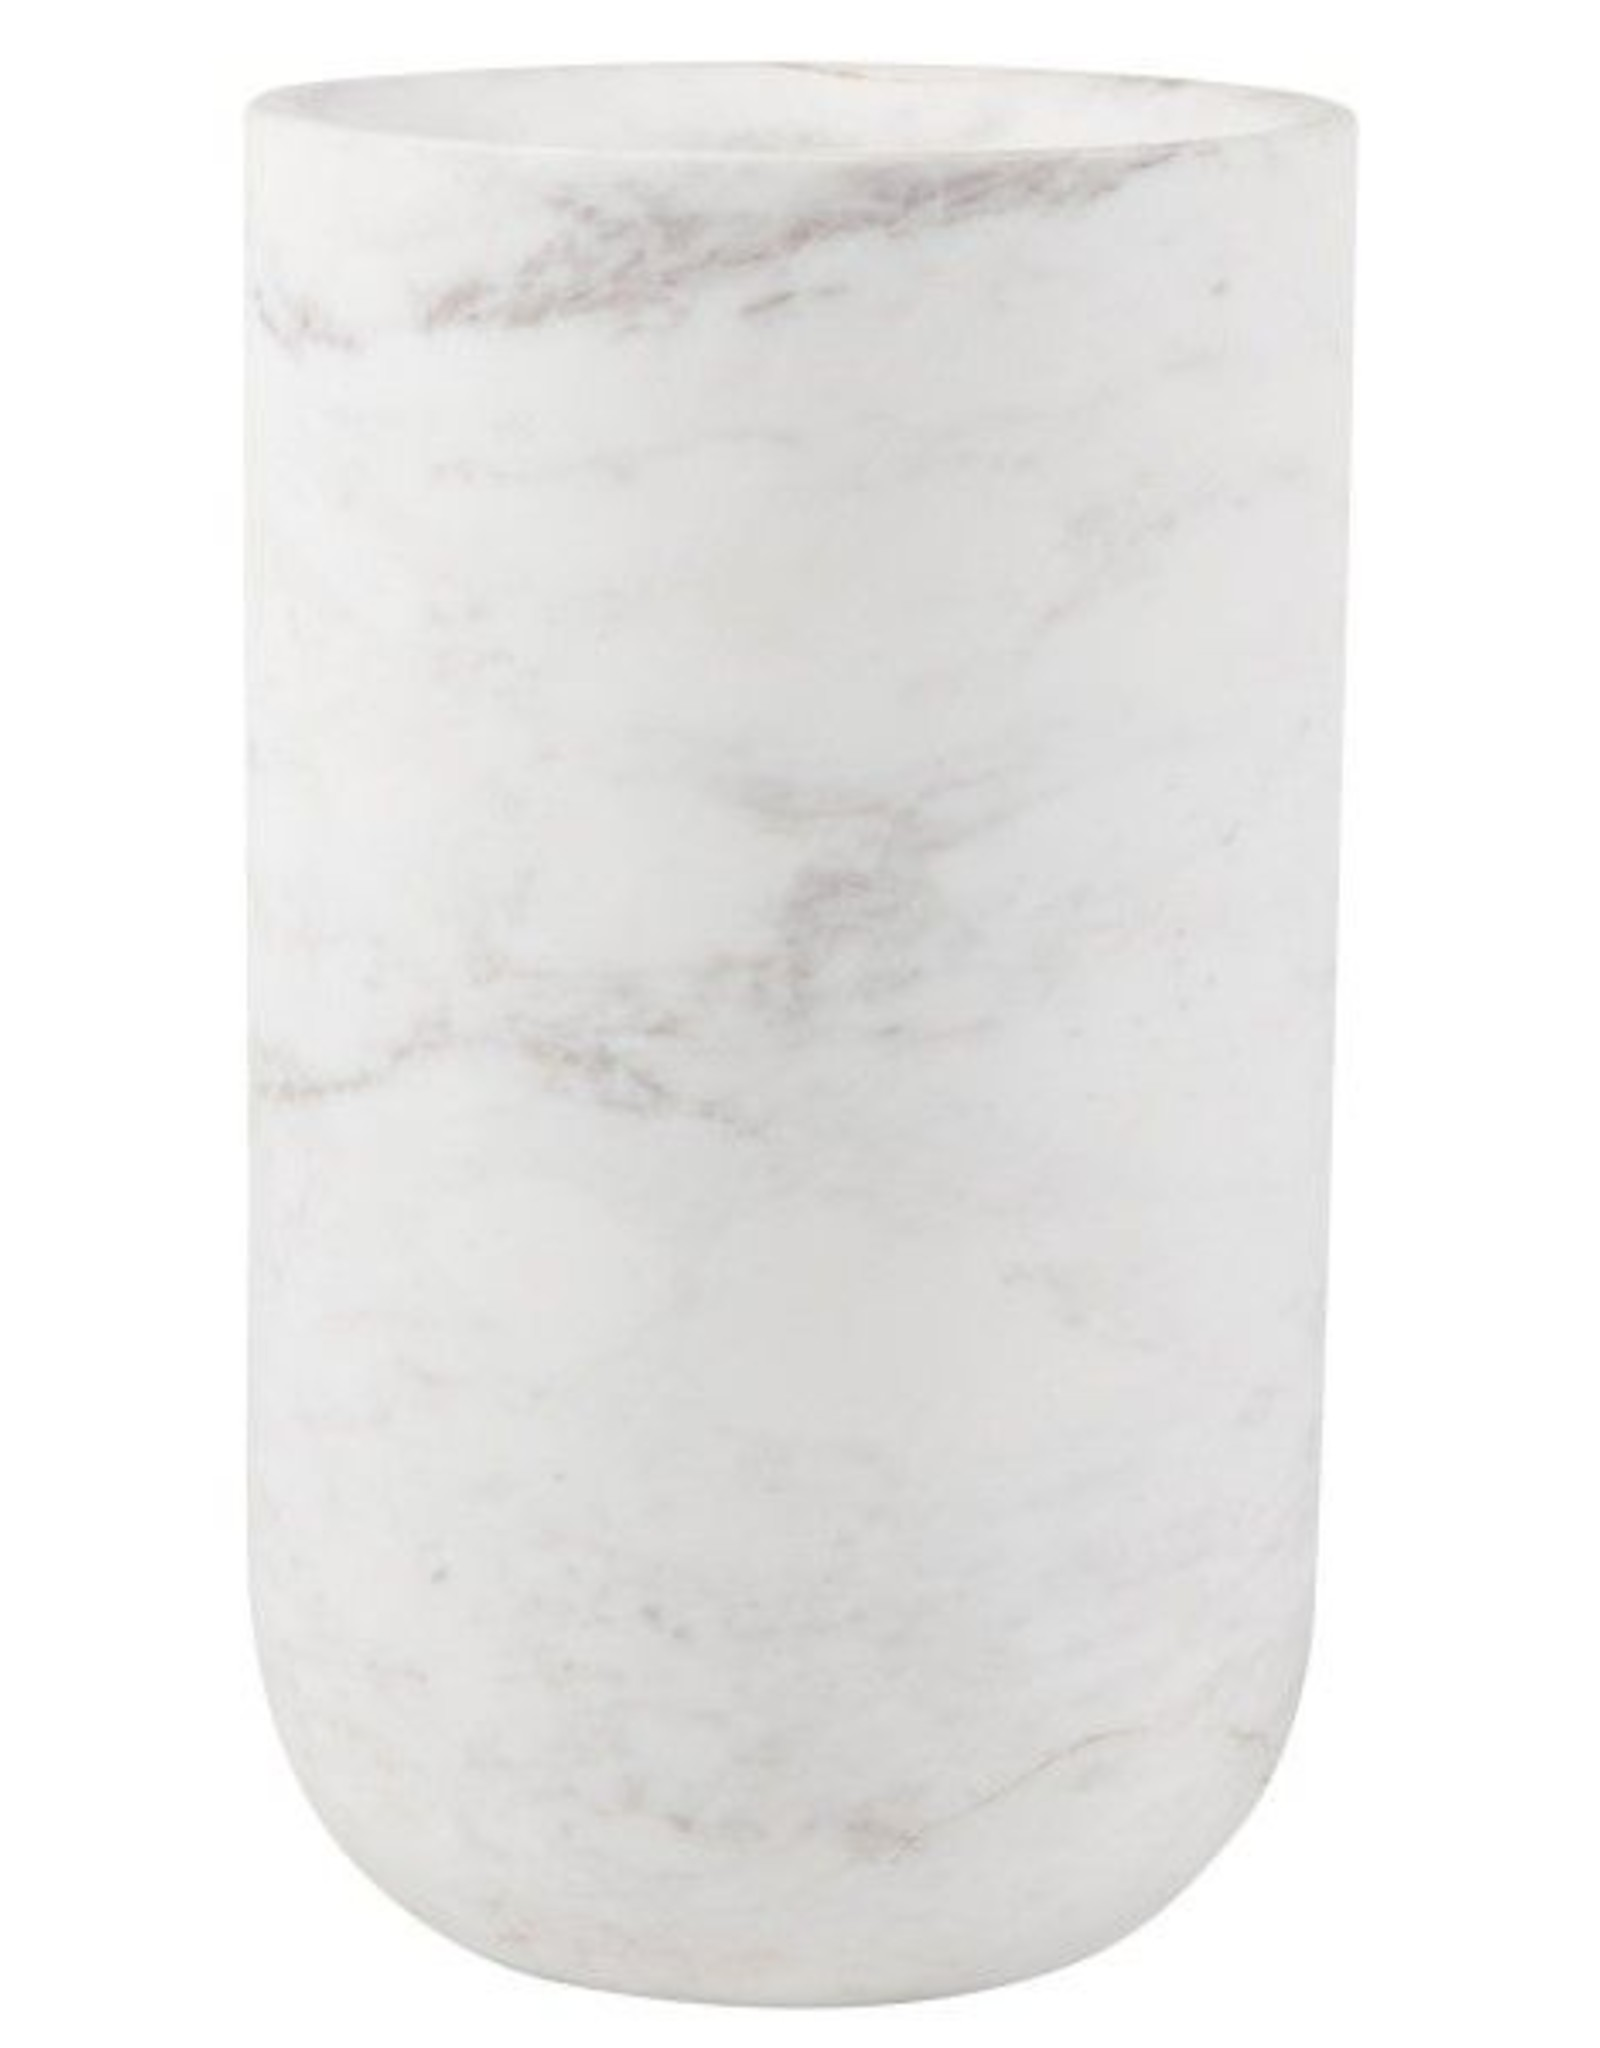 Zuiver Zuiver - Marble vase - White